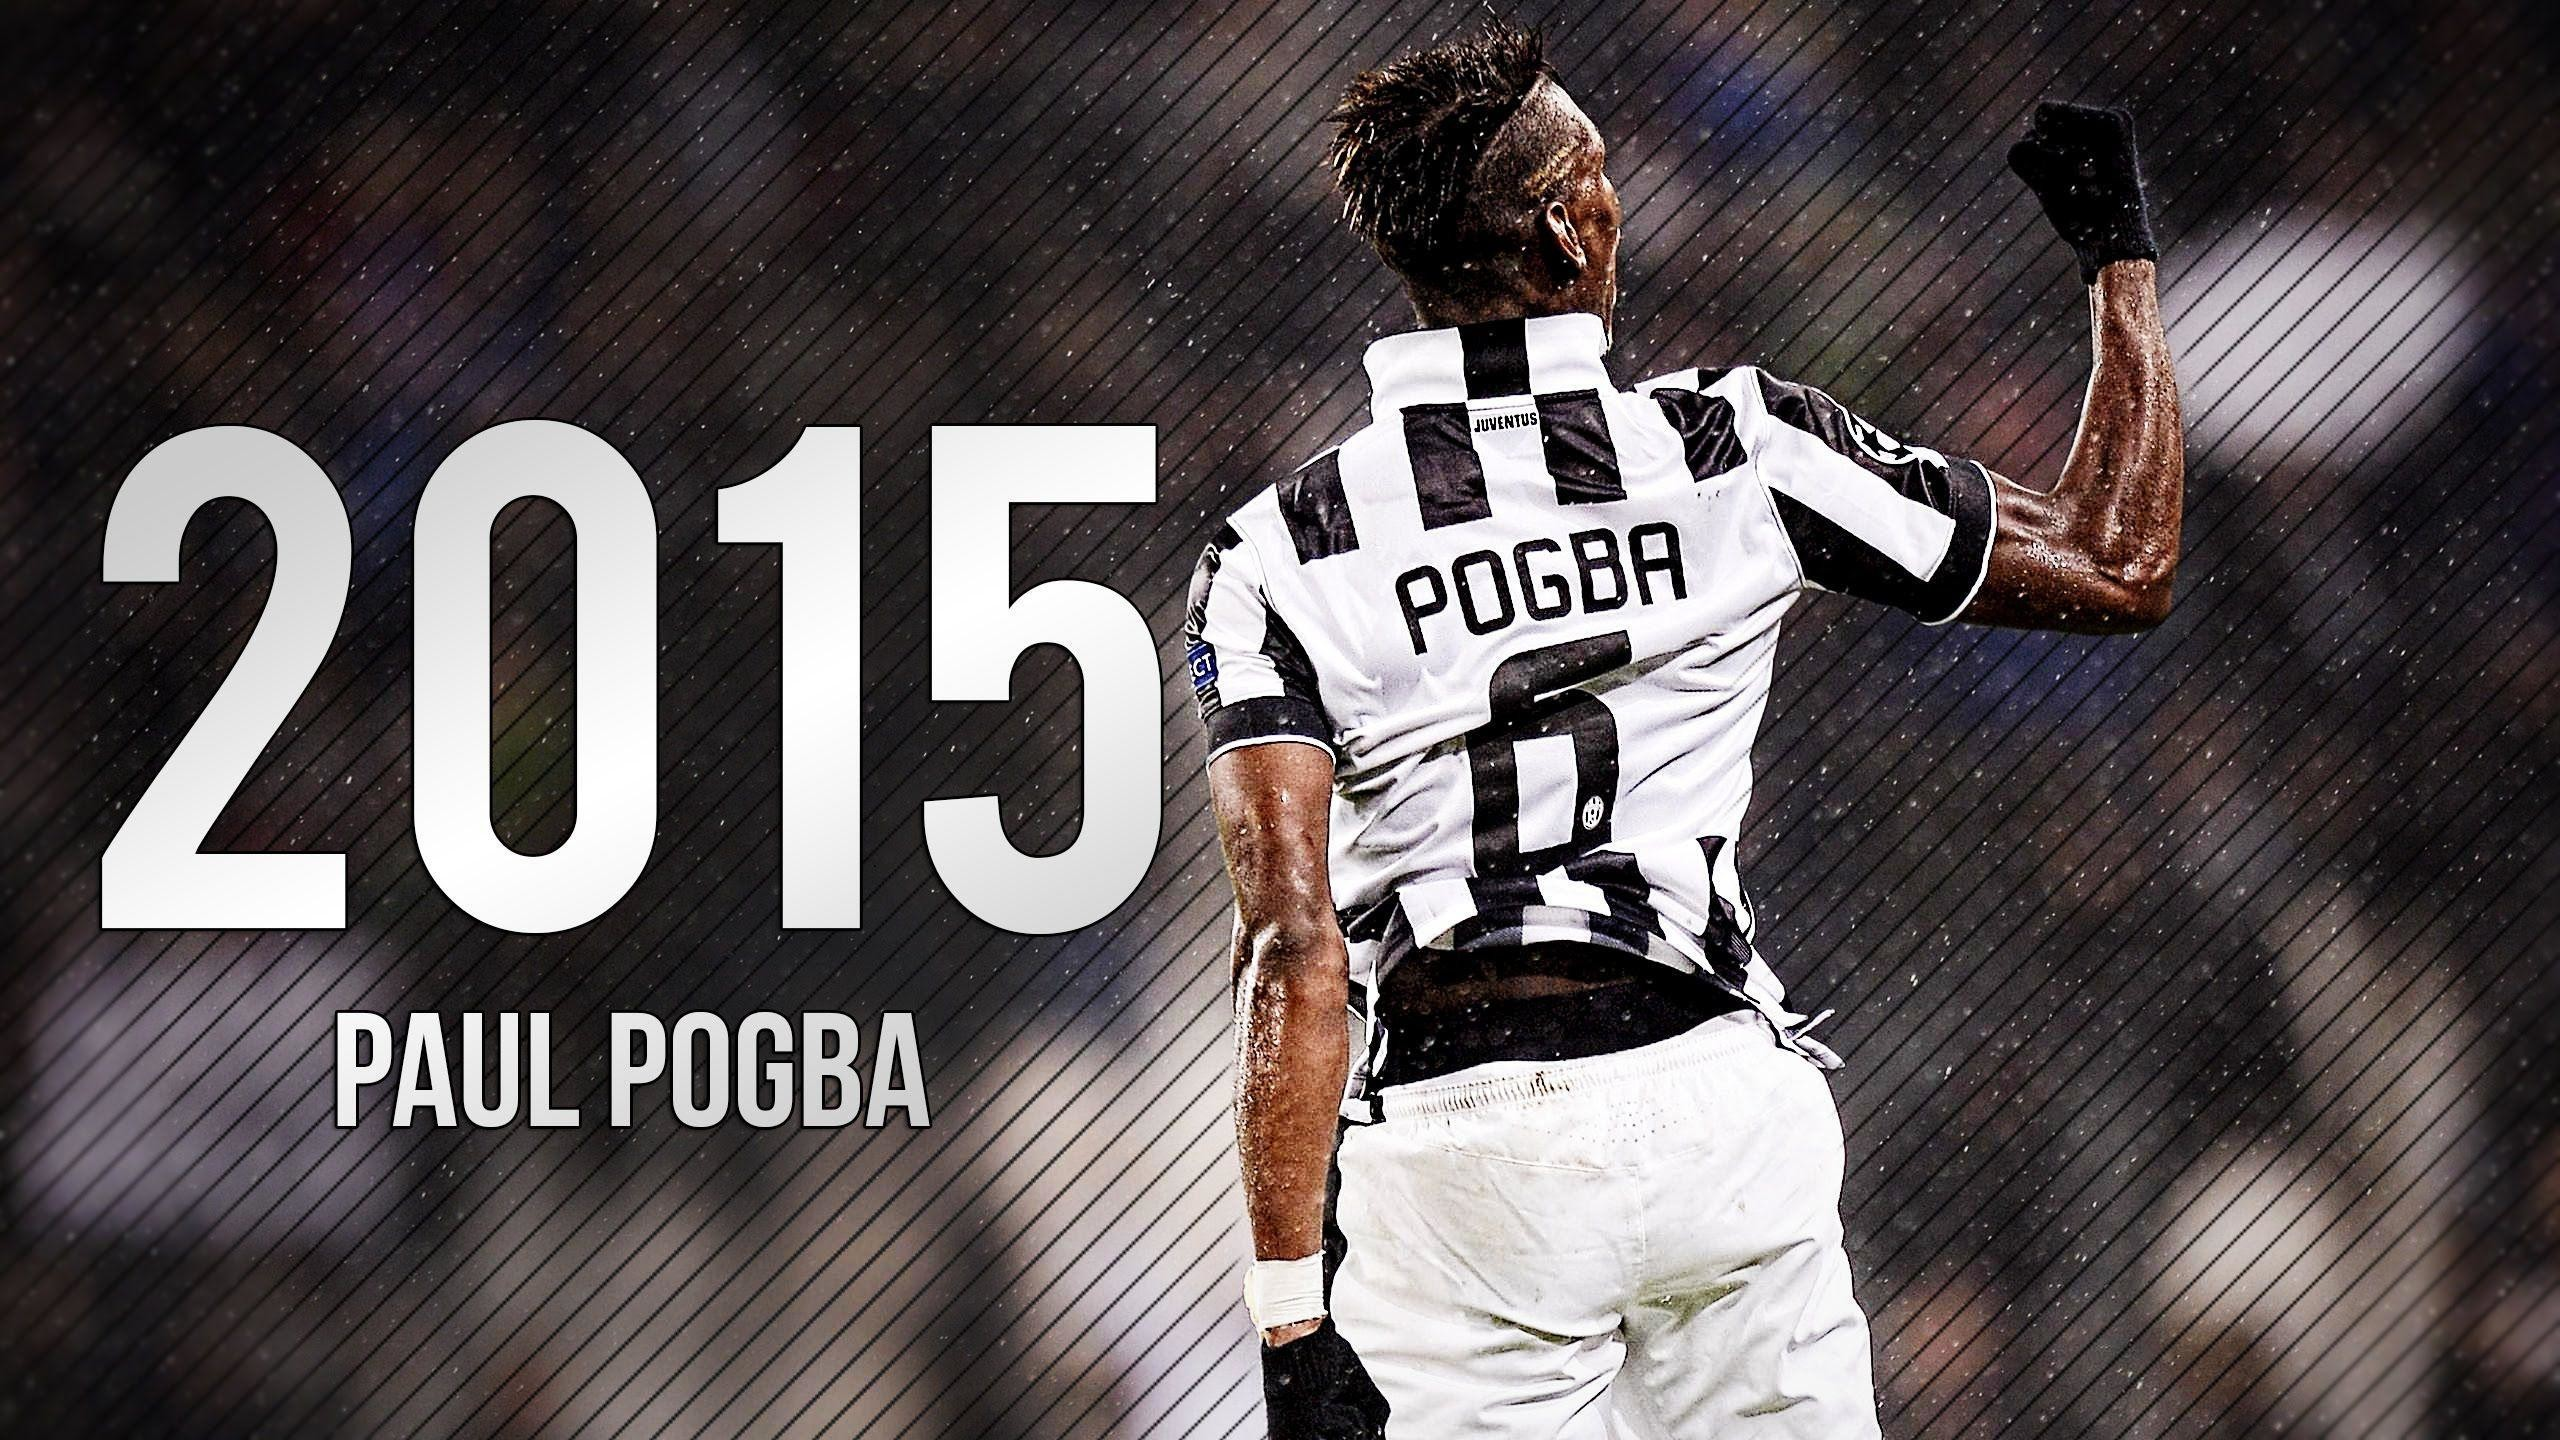 Res: 2560x1440, Paul Pogba Wallpapers High Resolution and Quality DownloadPaul Pogba